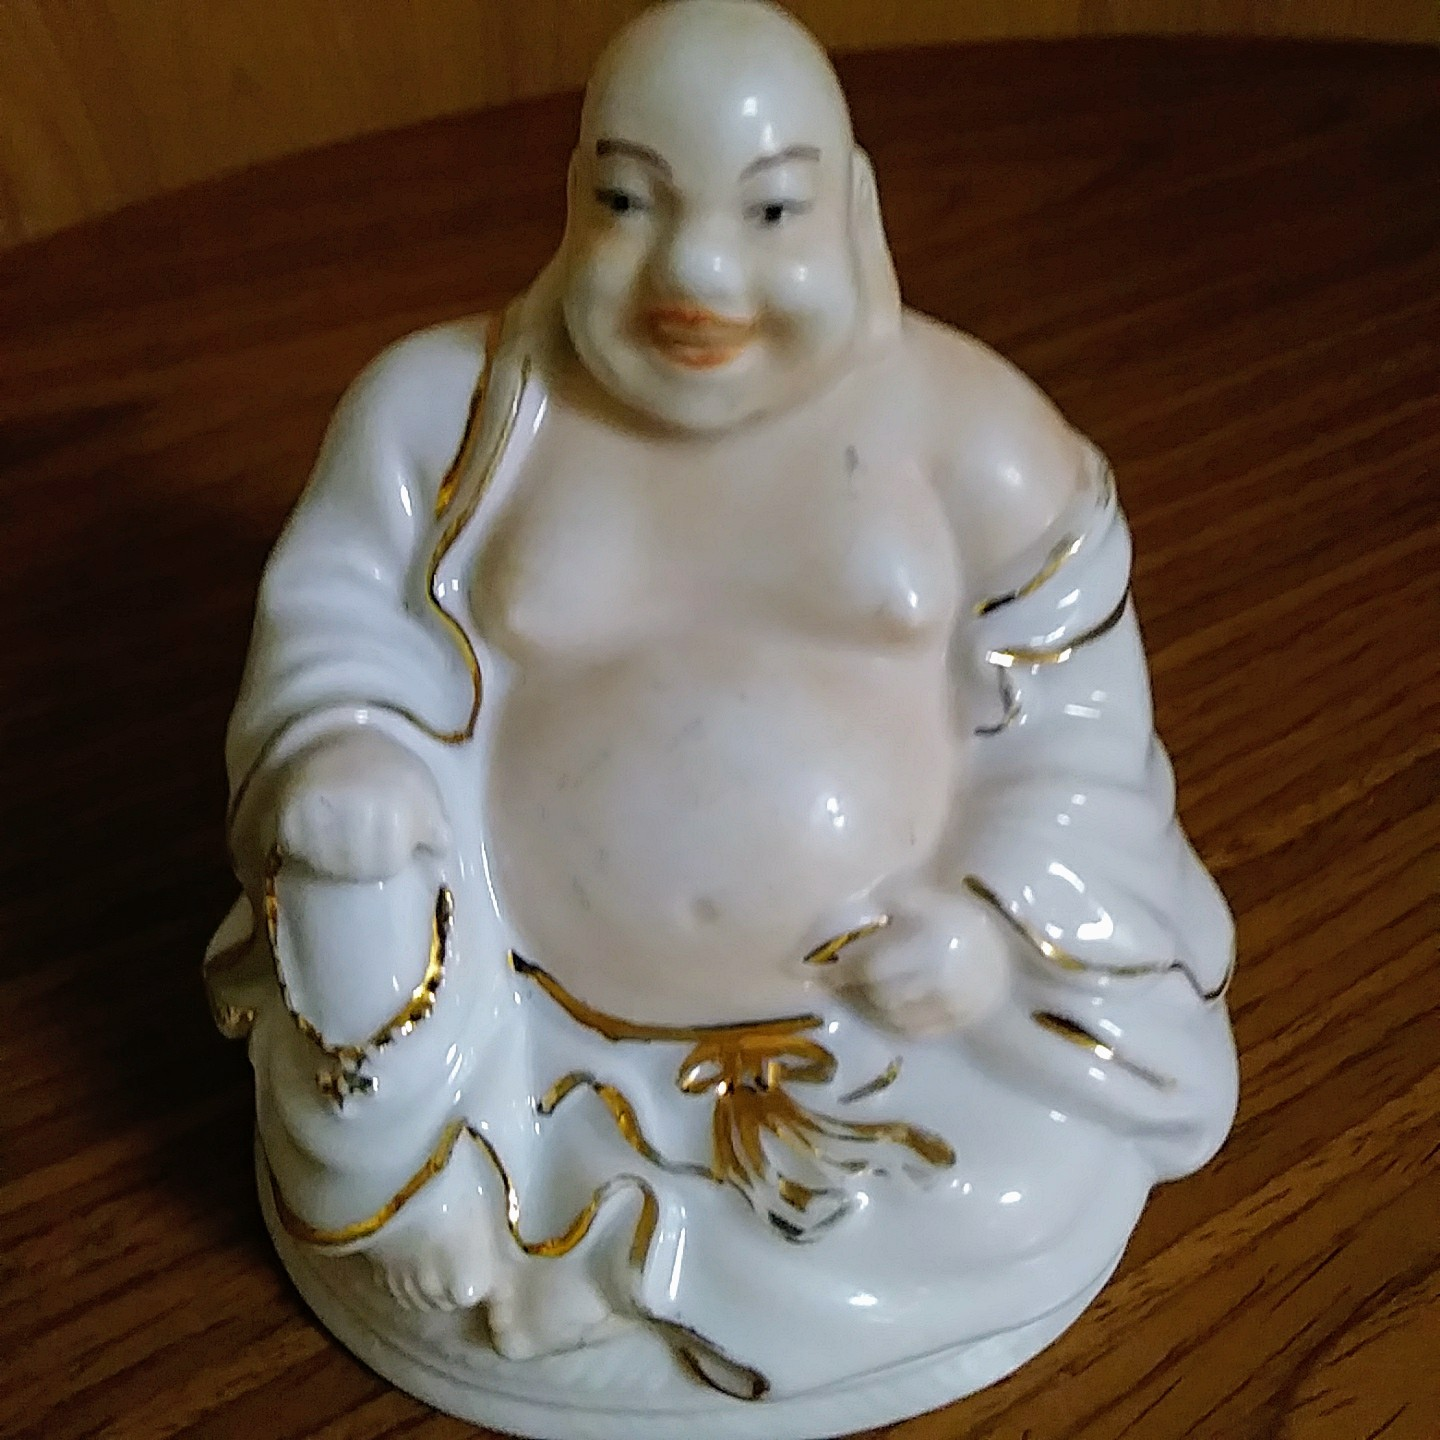 Monti Llardo Porcelain Design in Spain Happy Buddha Figurine White Gold Trim Han